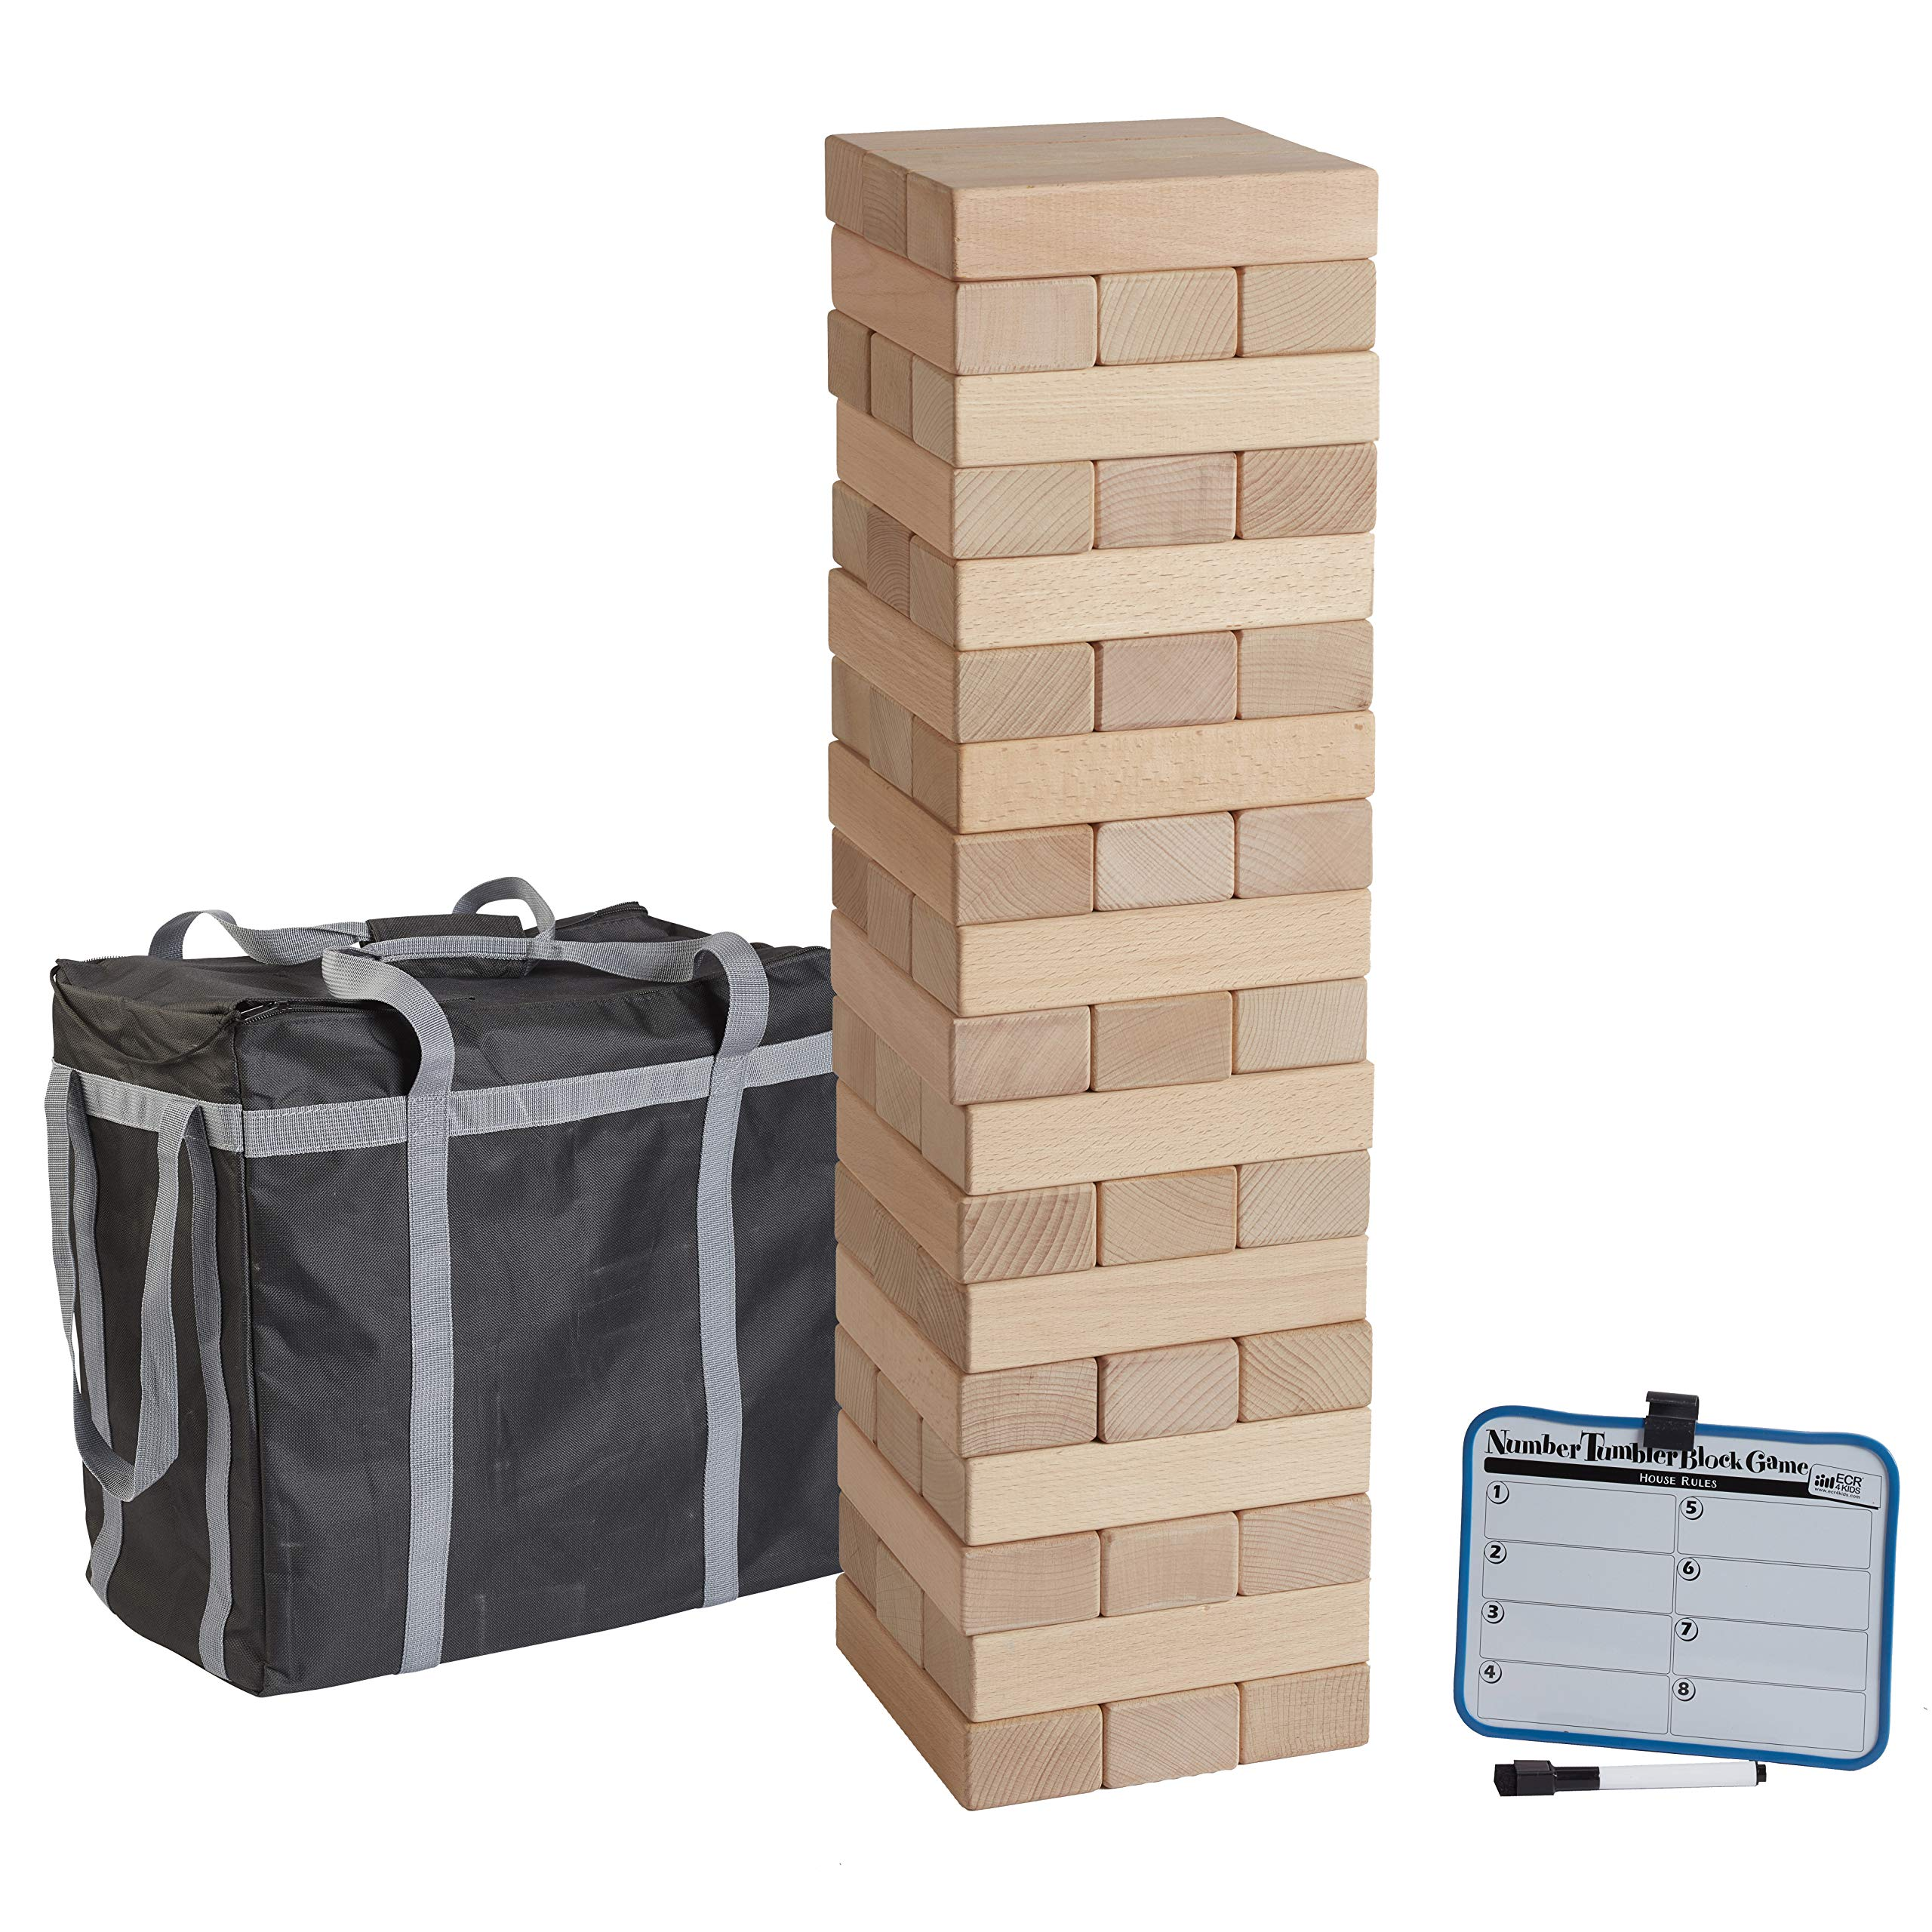 ECR4Kids Number Tumbler Giant Tumble Tower, Wood Stacking Block Game with Storage Bag and Dry-Erase Board for Bonus Rules, Just Right 20'' Tall (54-Piece Set)